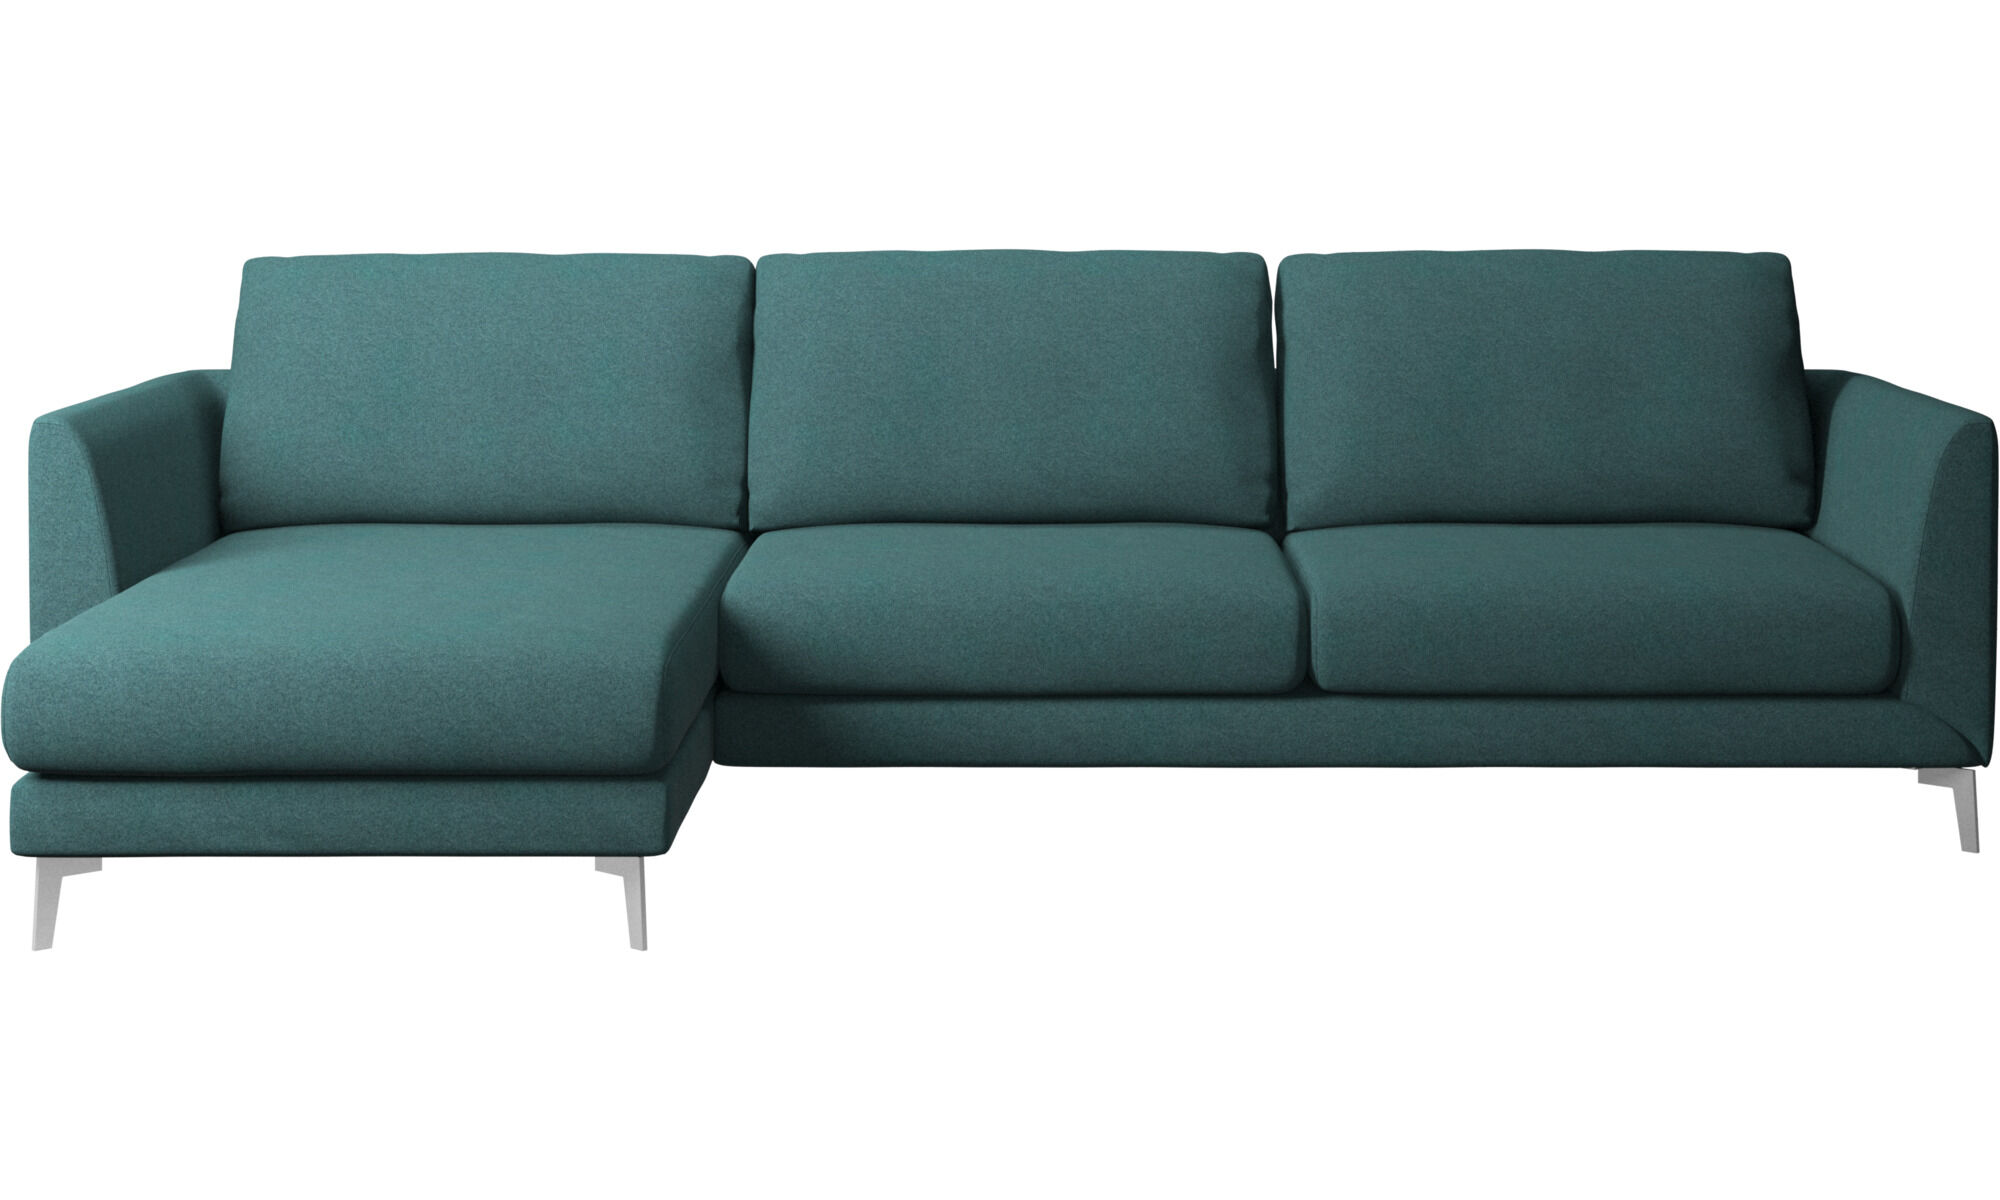 Merveilleux Chaise Lounge Sofas   Fargo Sofa With Resting Unit   Green   Fabric ...